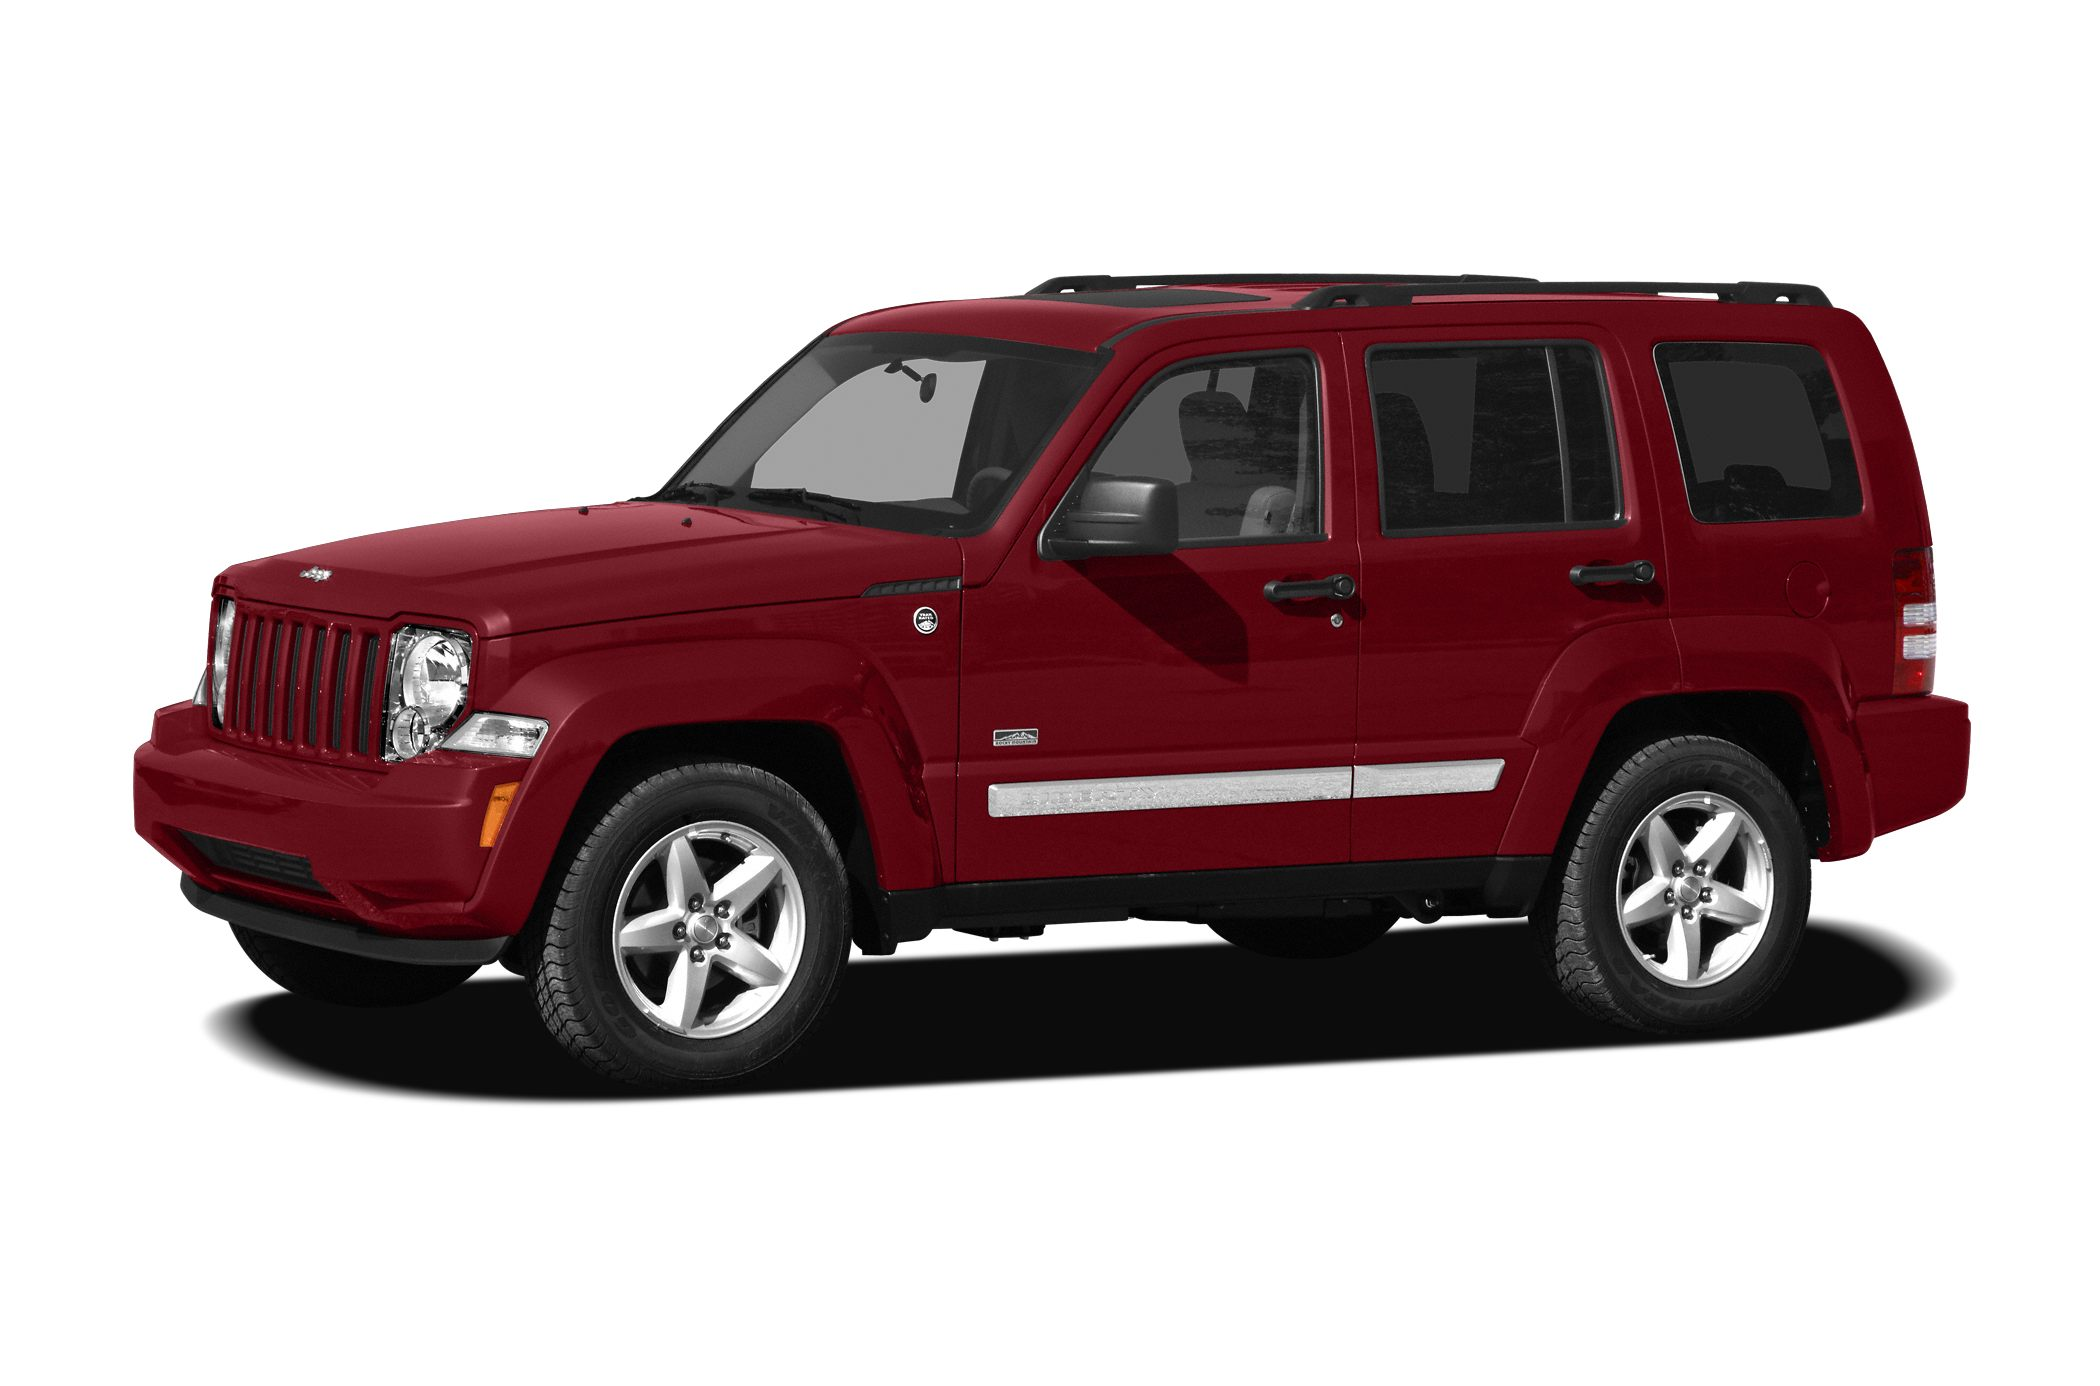 2009 Jeep Liberty Sport Buy with confidence - local trade in This vehicle has the extras you are